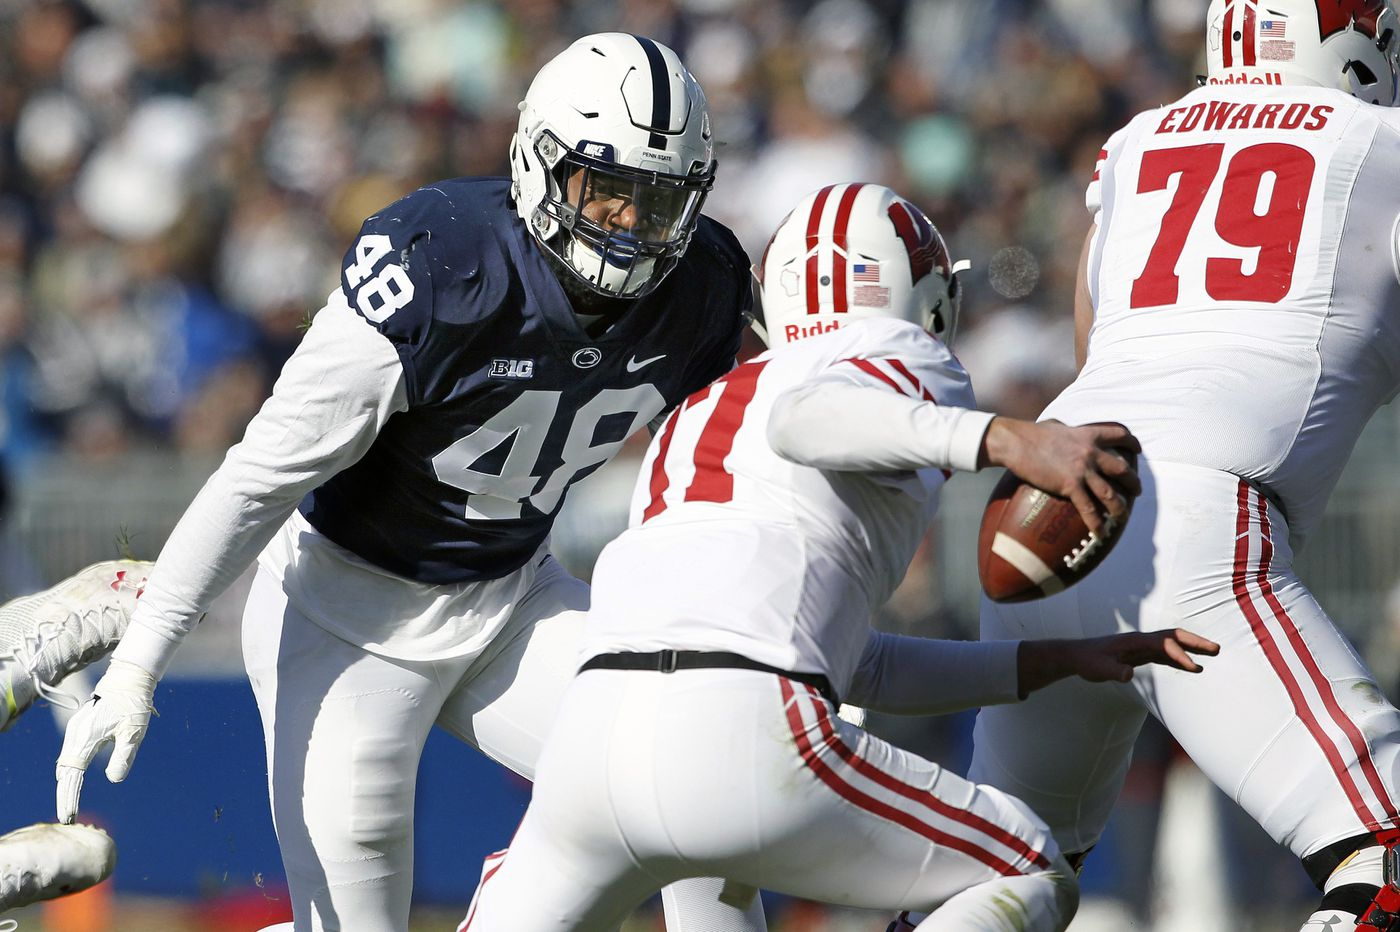 Penn State's Rob Windsor, a Wisconsin native, makes statement for Nittany Lions' defense